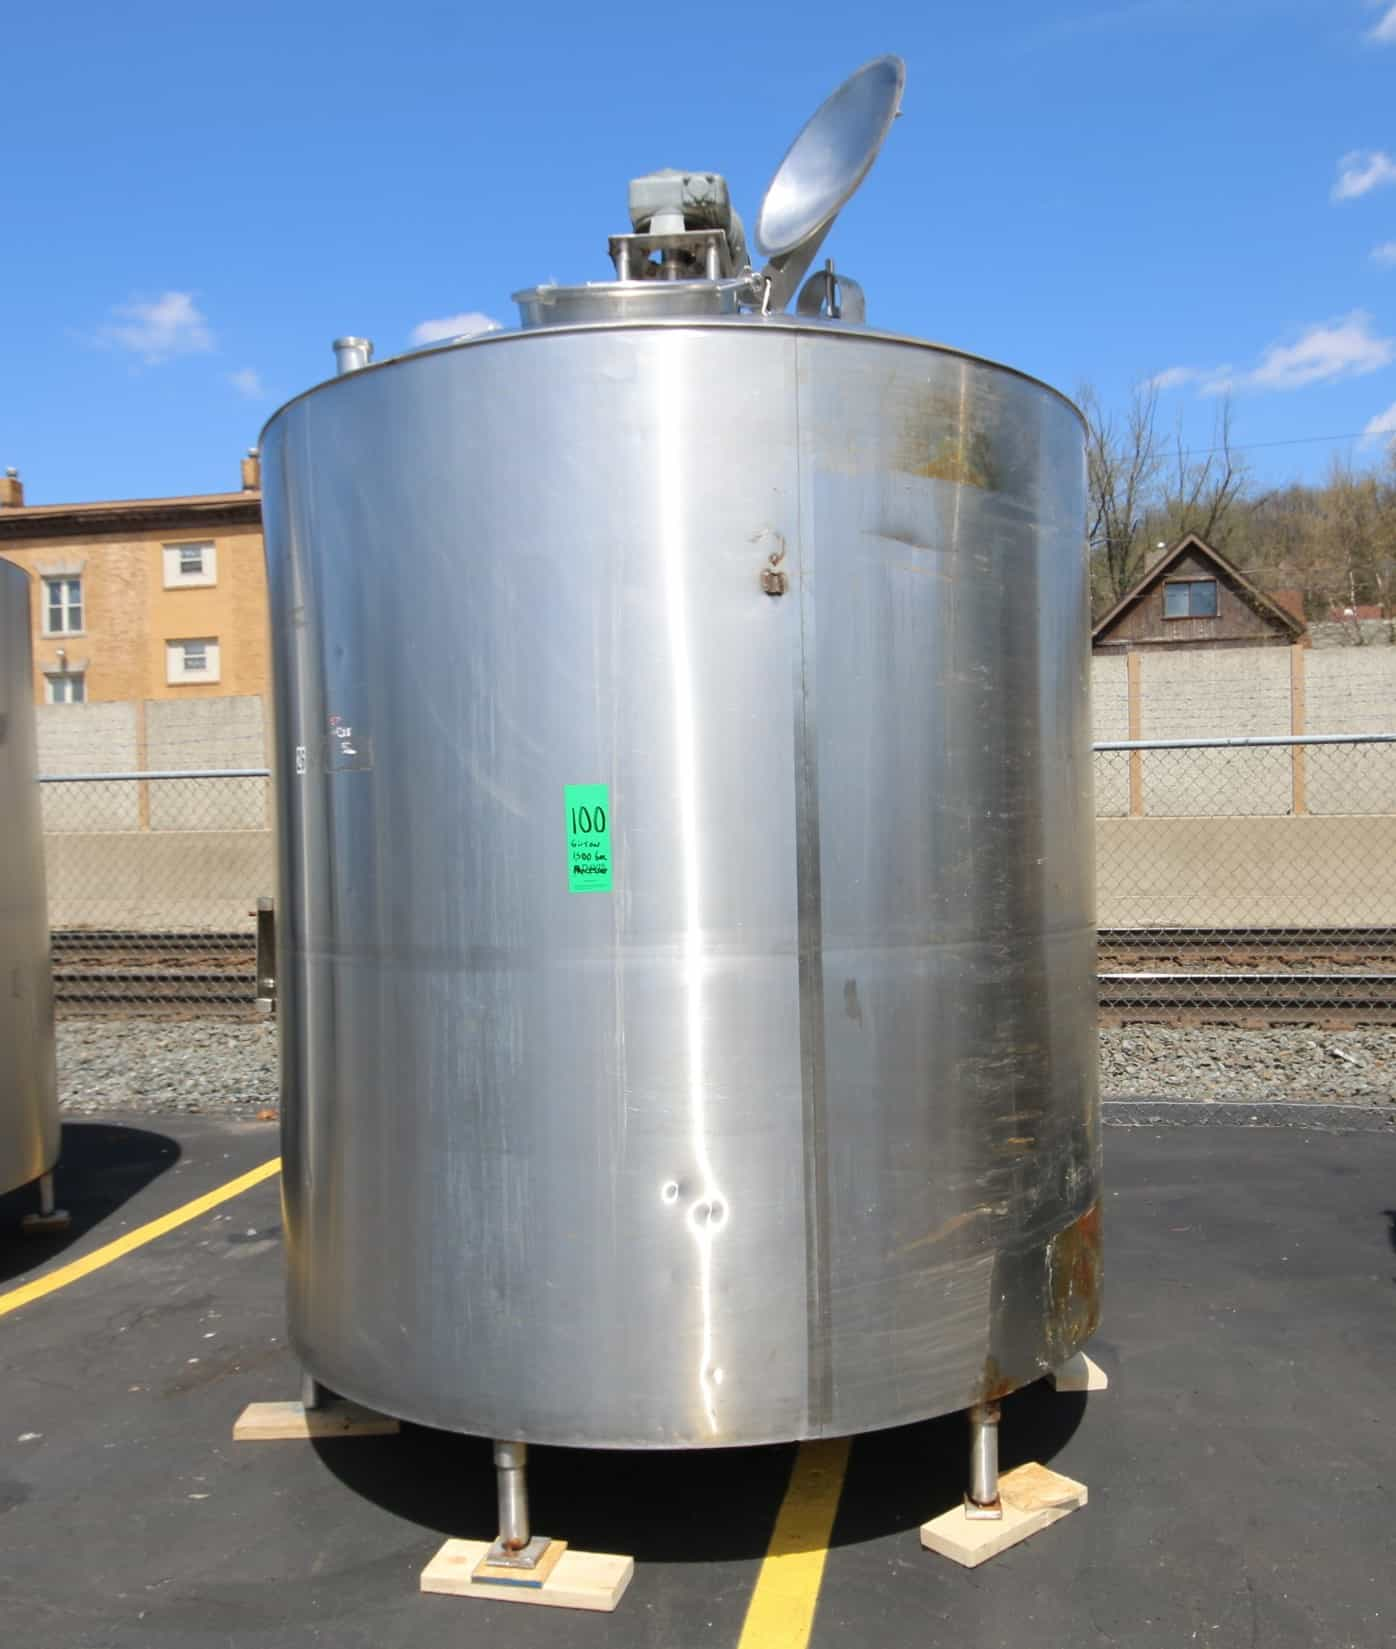 """Girton 1,500 Gal. Dome Top S/S Processor, Model PW-P-1500, S/N 72090504 with Bottom Sweep Agitator with 2 hp / 1725 RPM, Dual Sprayball, Baffle, Top Mounted Man Door, S/S Bottom, WP 100 psi Jacket, 208/230/480V 3 Phase, (Aprox. Overall Diam. 128"""" H x 88"""" W)"""